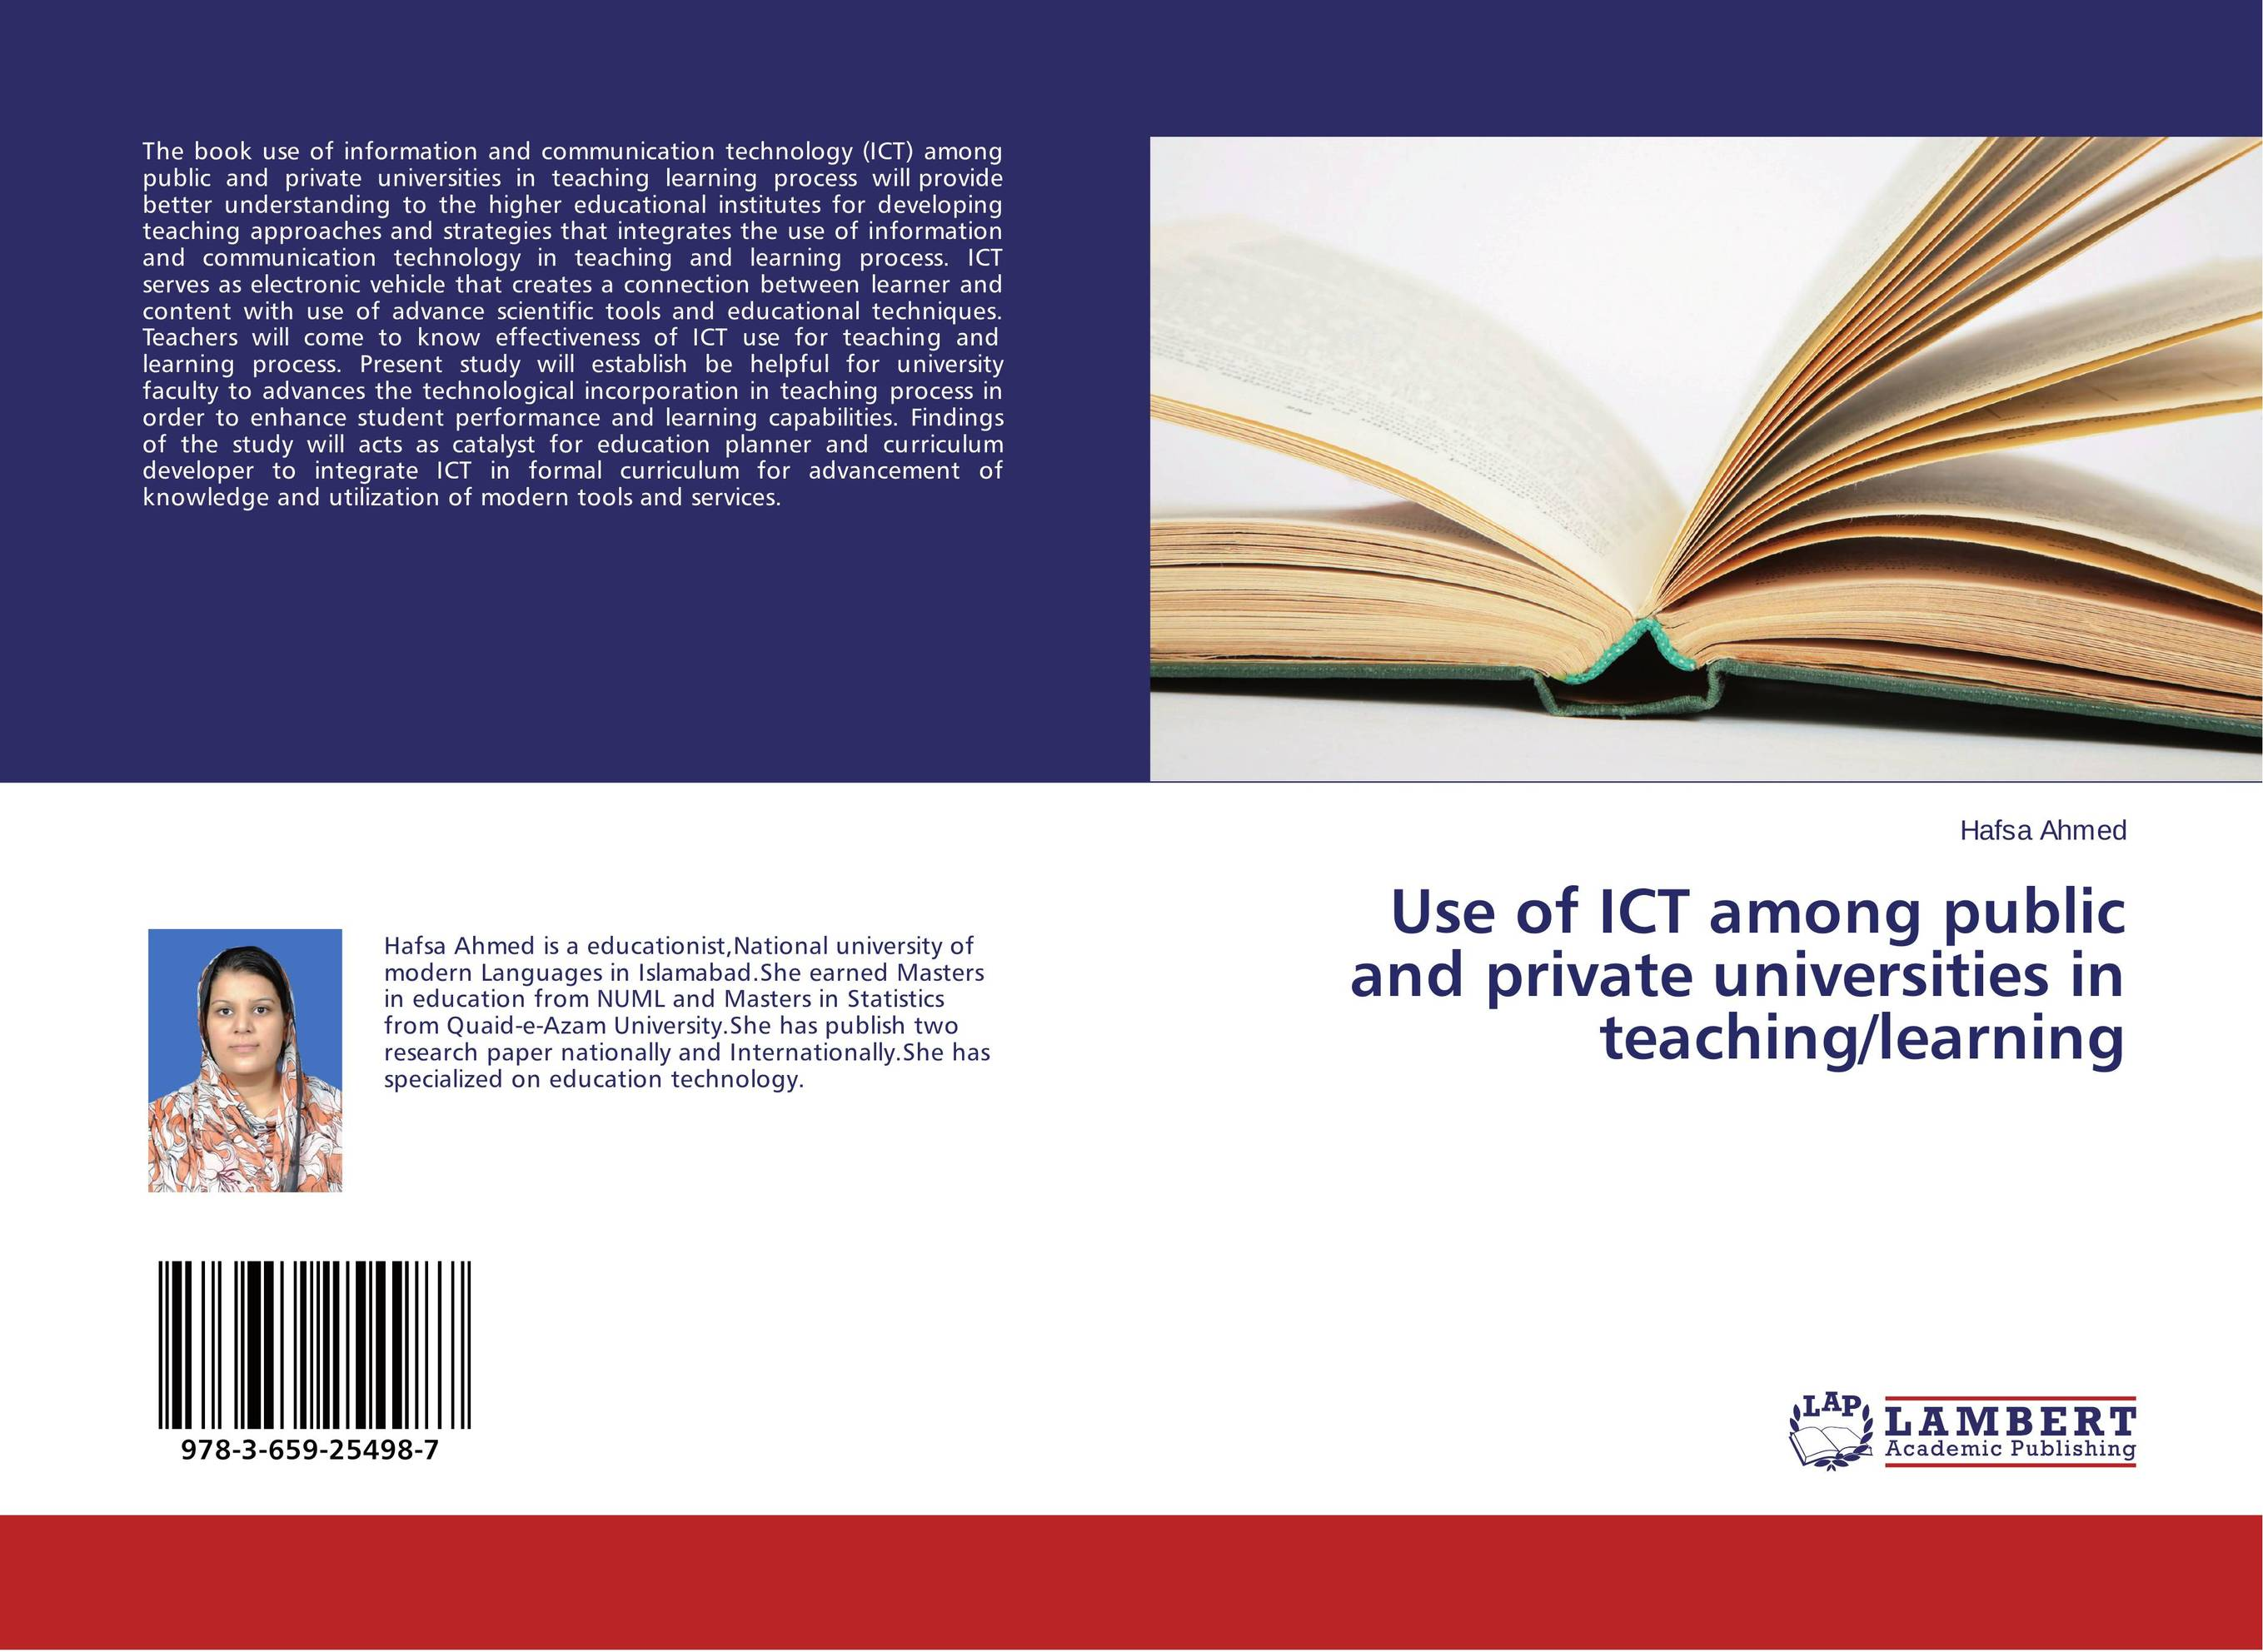 Use of ICT among public and private universities in teaching/learning the role of ict to make teaching learning effective case study uganda